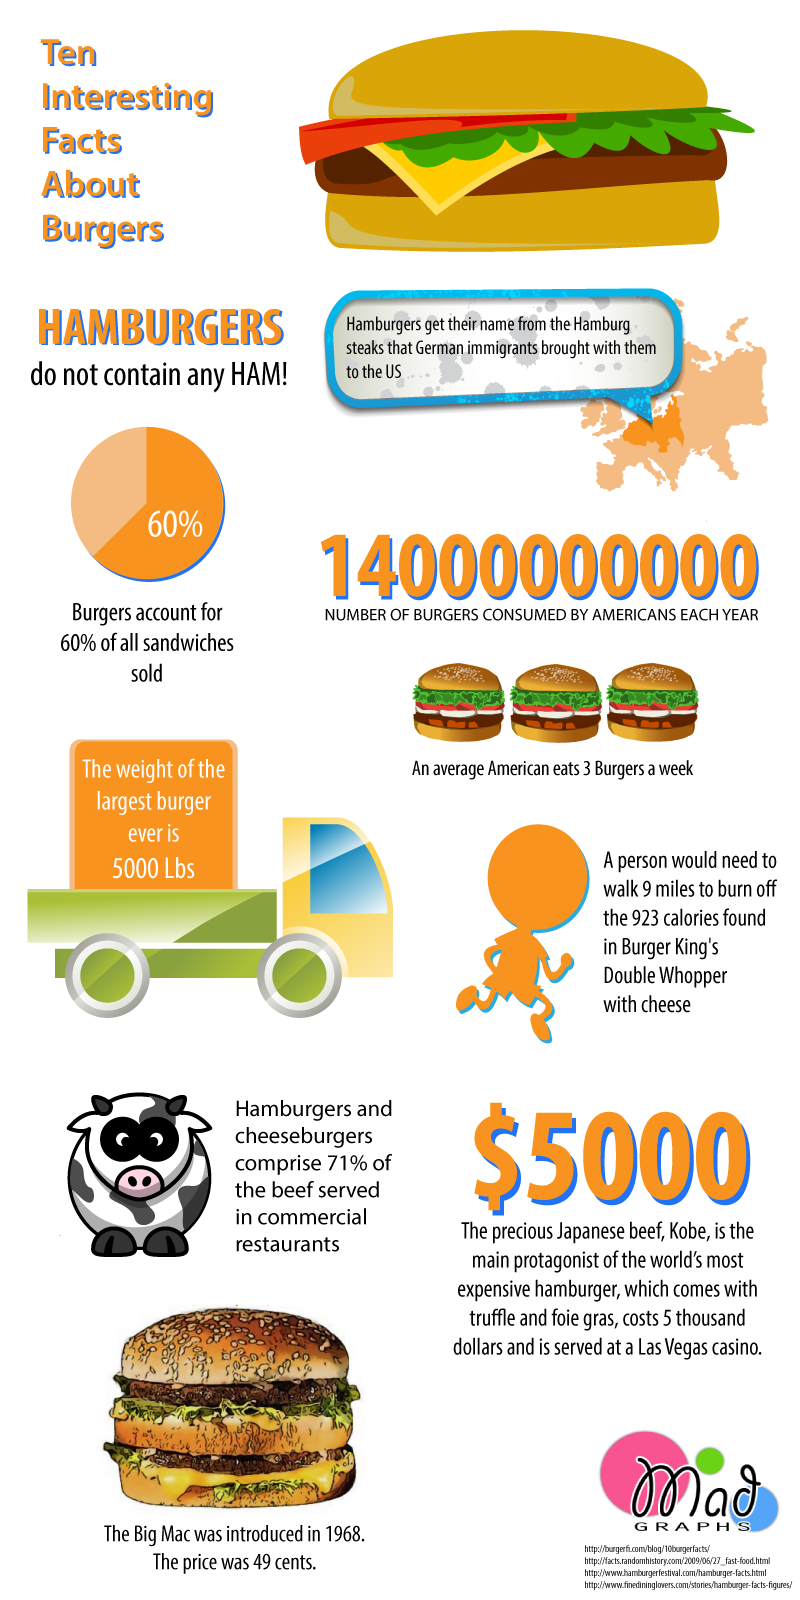 10 Amazing Burger Facts Infographic